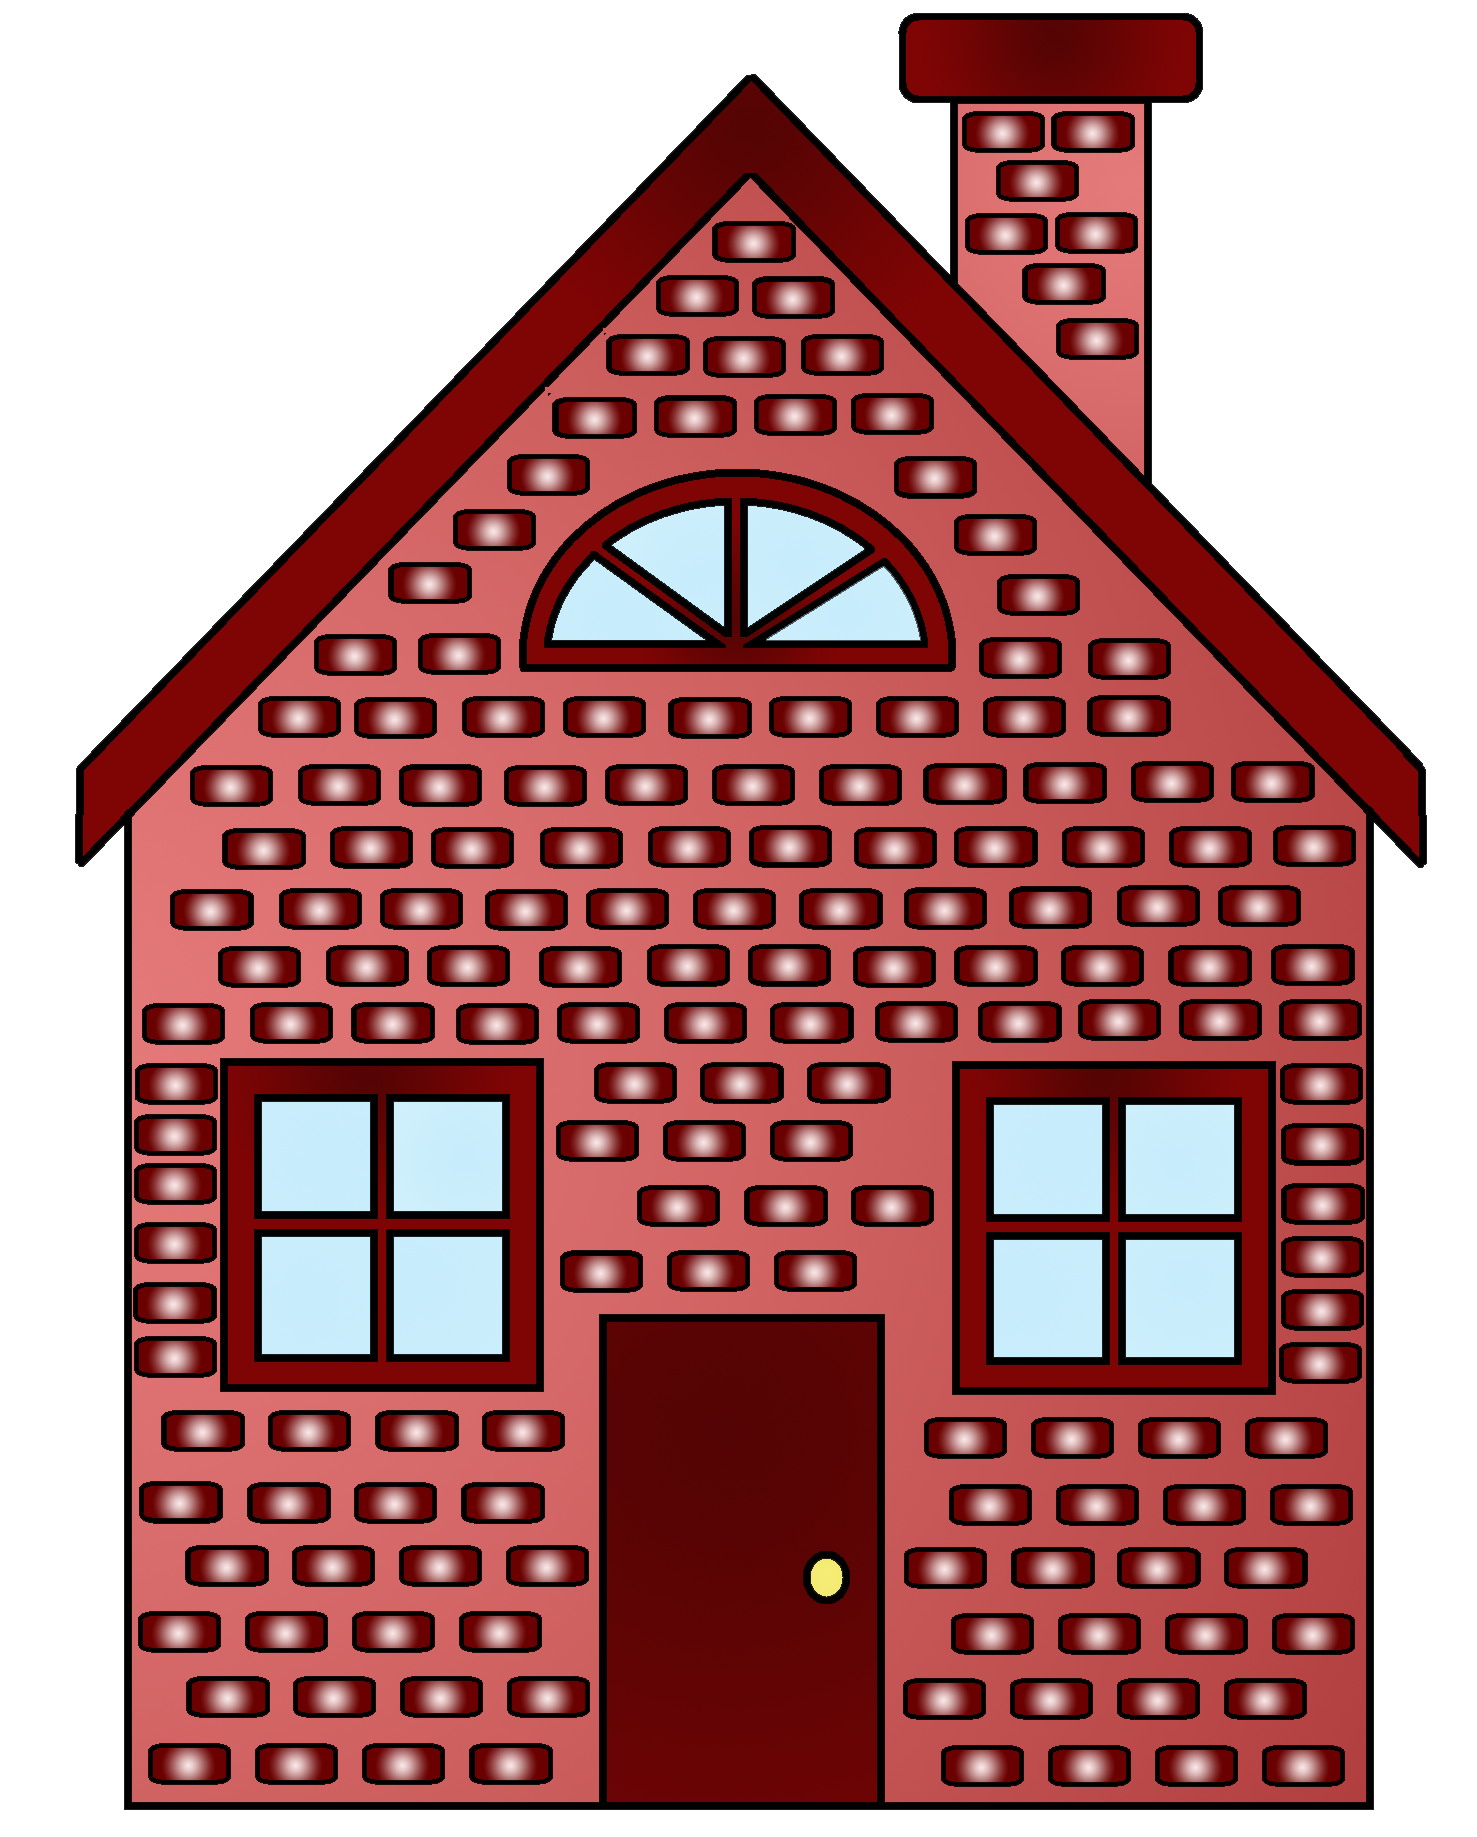 Two story house clipart png vector royalty free download Brick building clipart - Clipground vector royalty free download